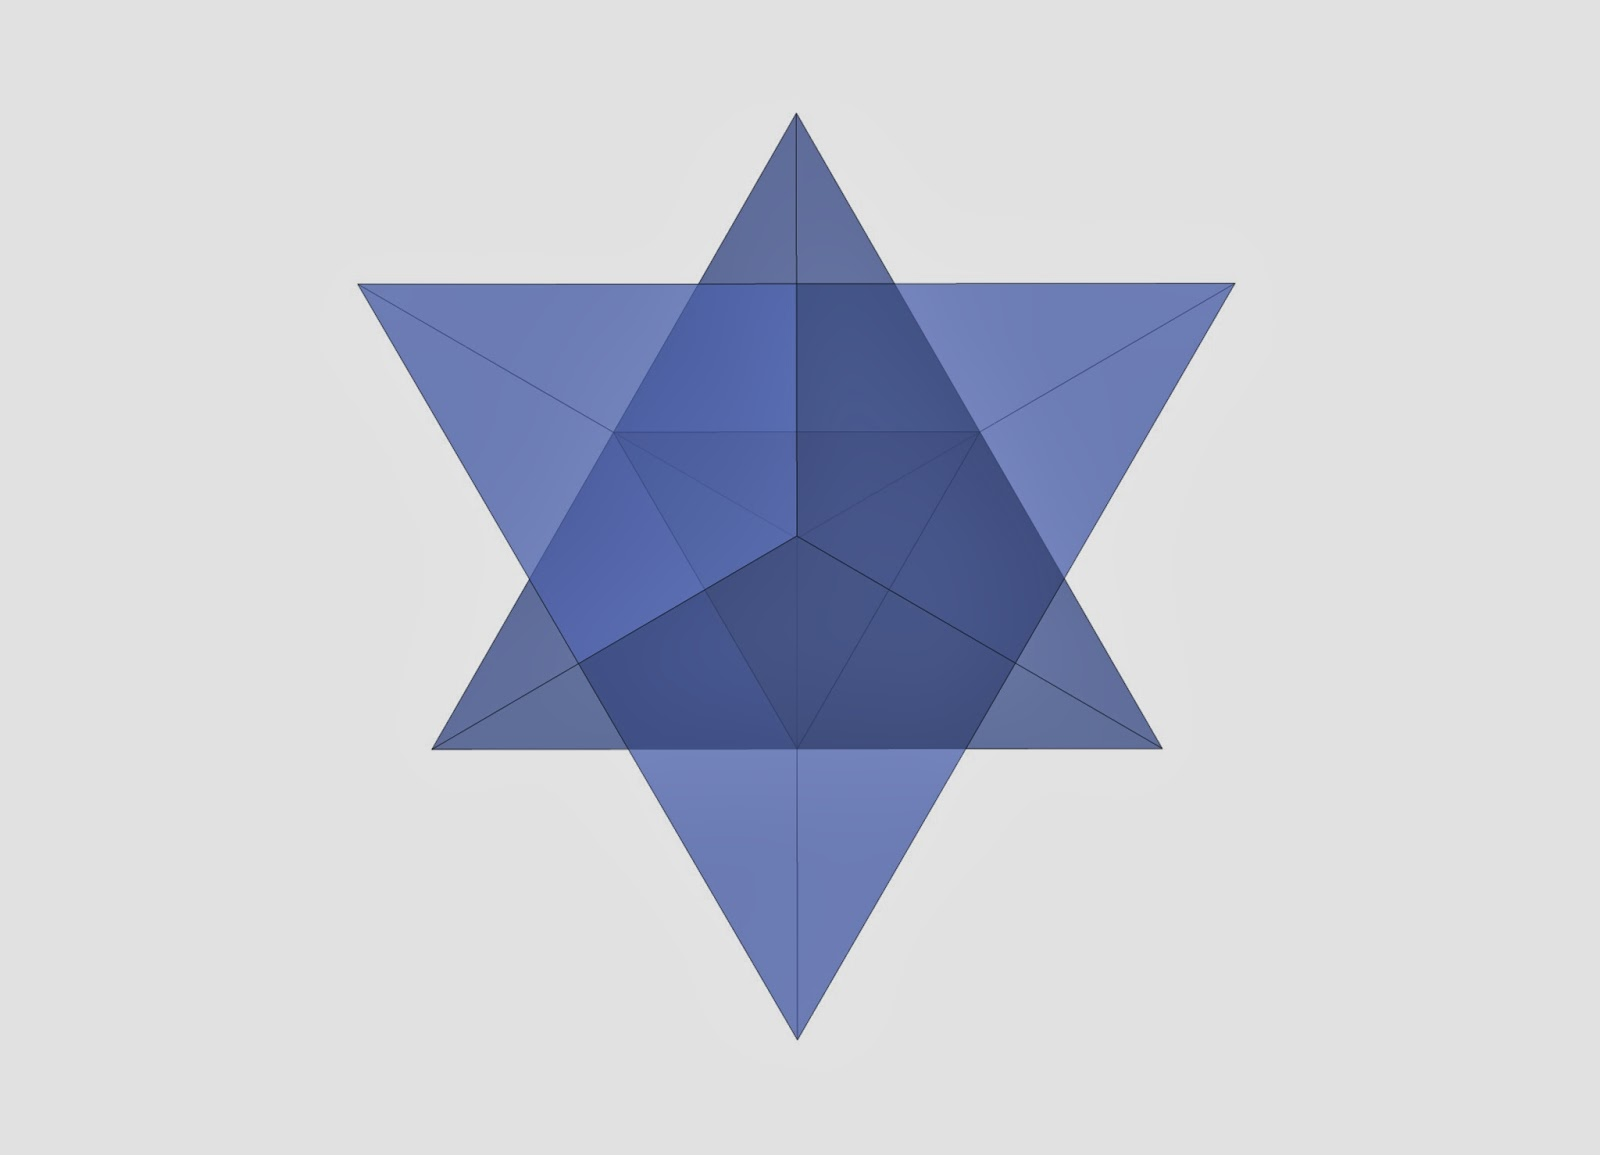 Star Tetrahedron Template Images